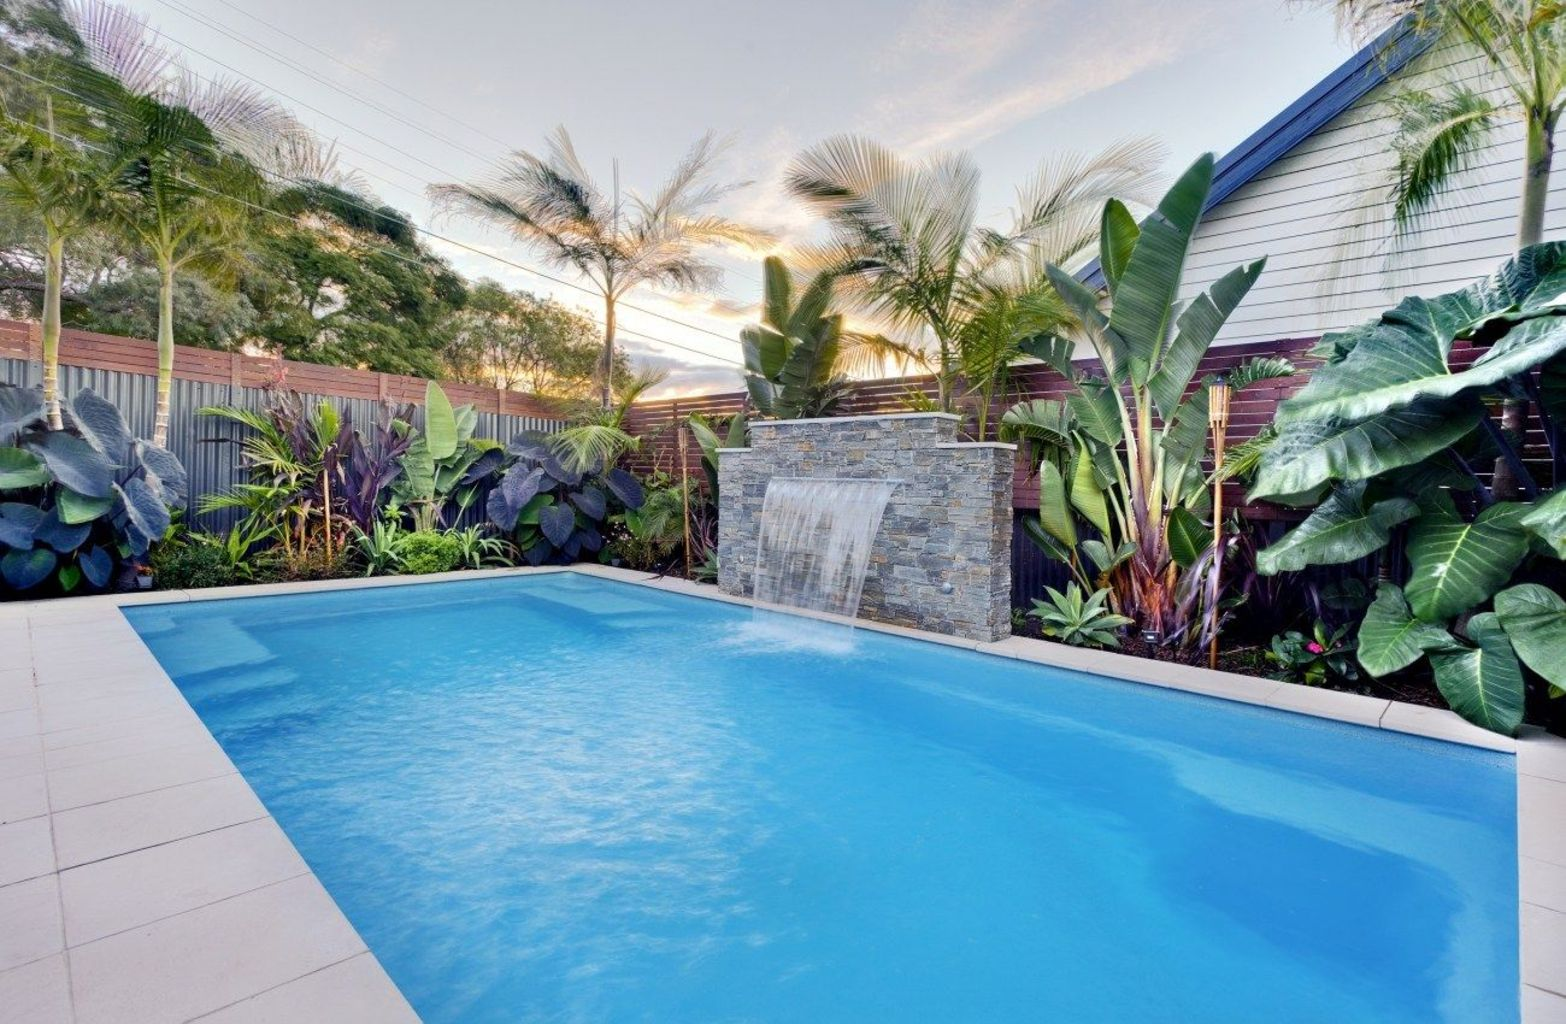 35 Trending Small Pool Designs for Your Backyard ...